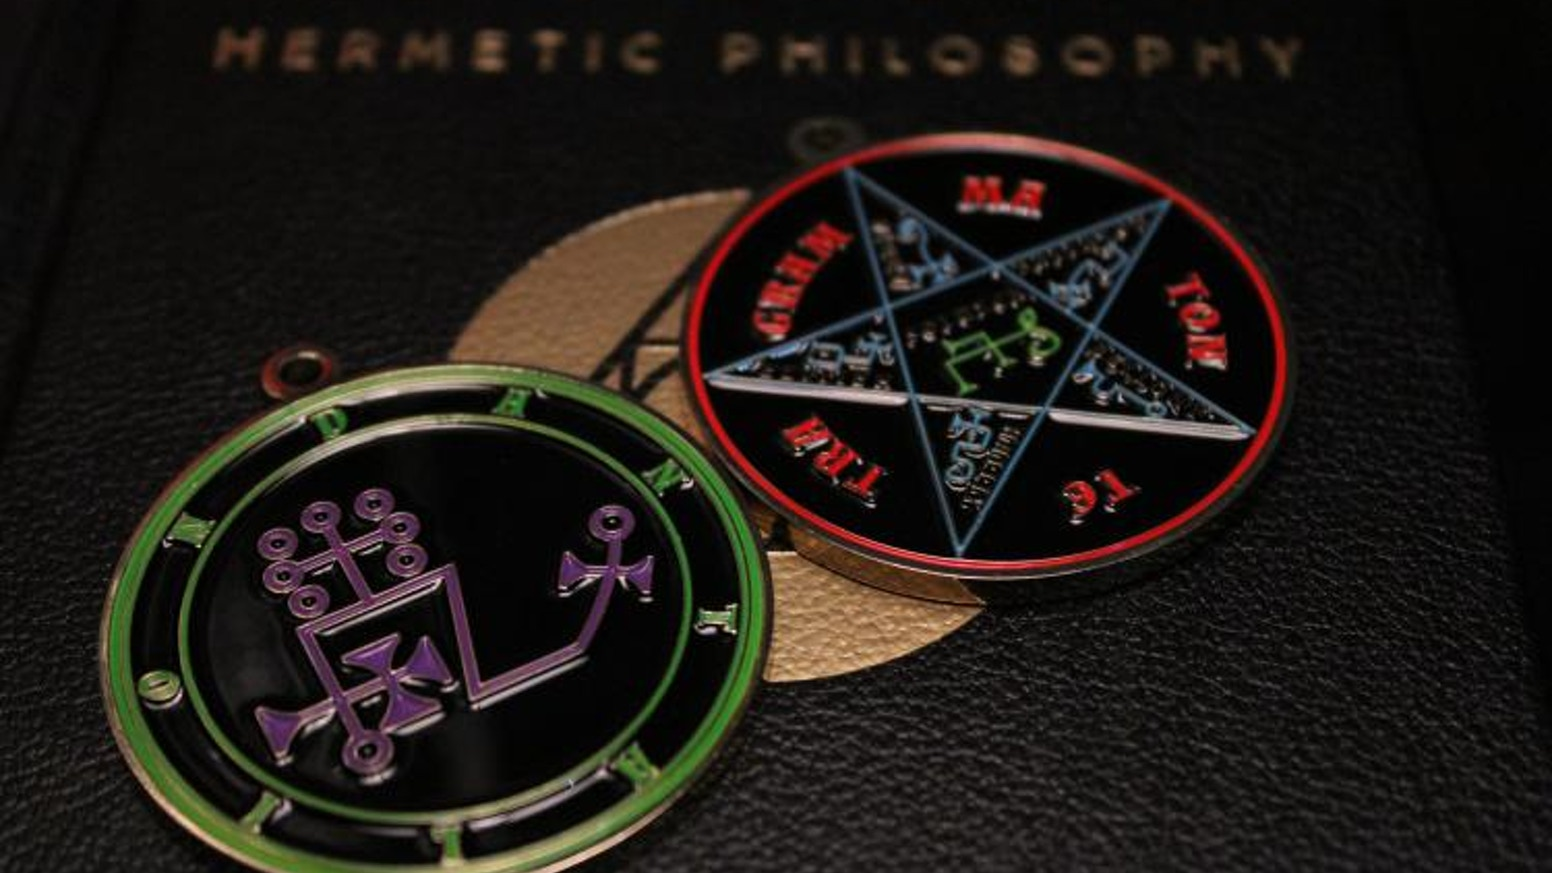 Goetic ritual medallions and floor mats, along with a custom ritual adapted for the modern occultist!